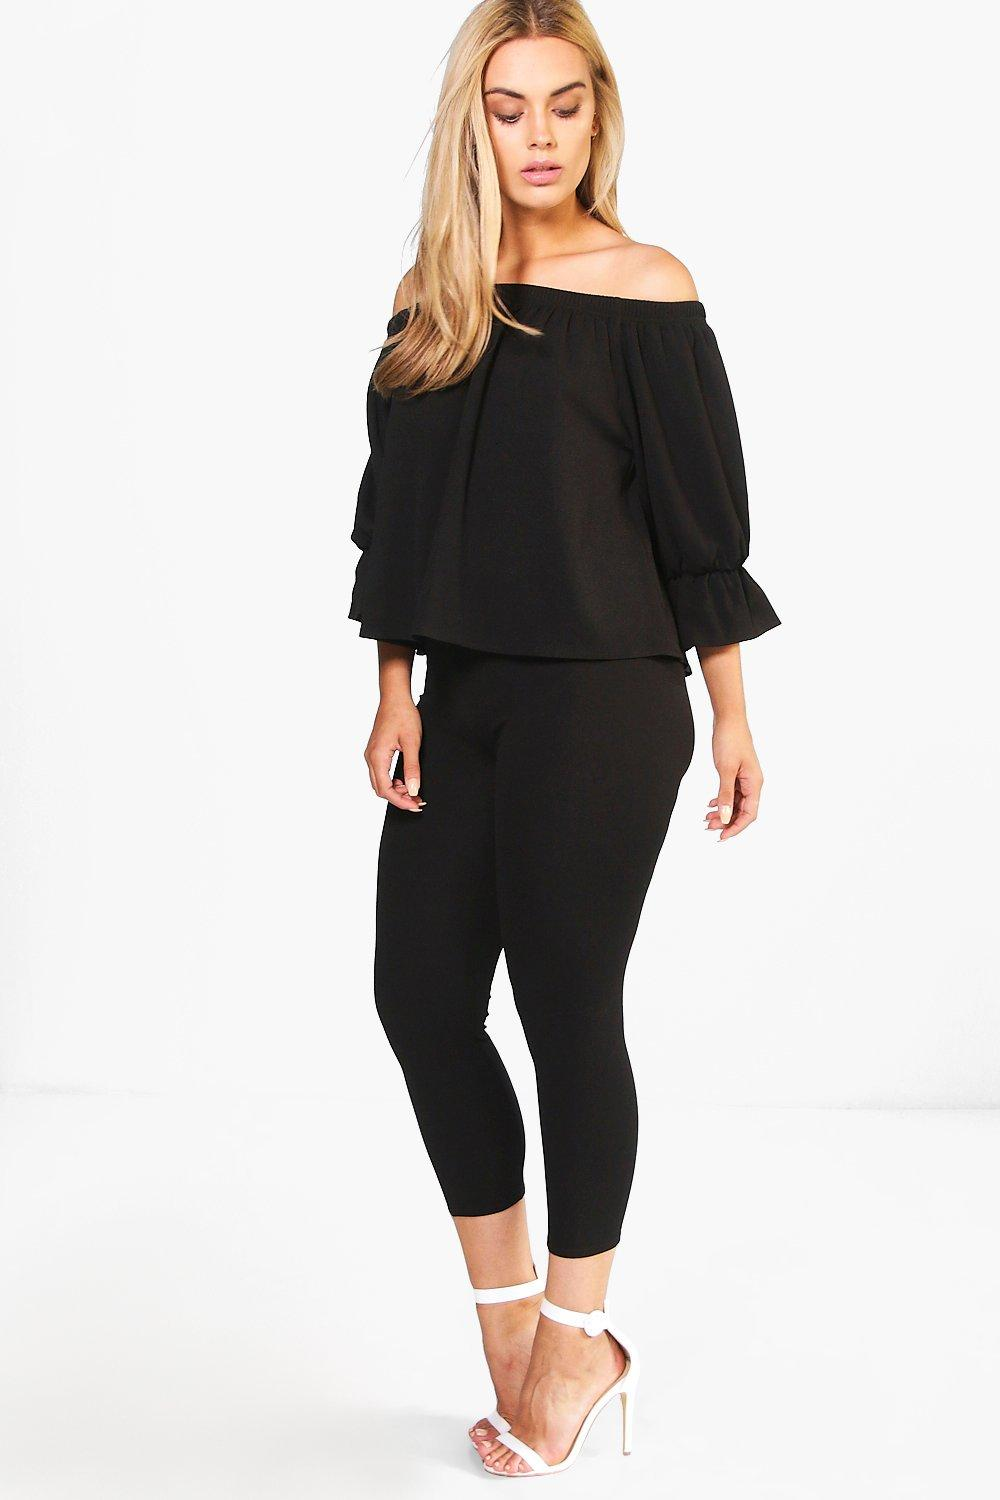 Plus Joslyn Frill Top + Trouser Co-ord